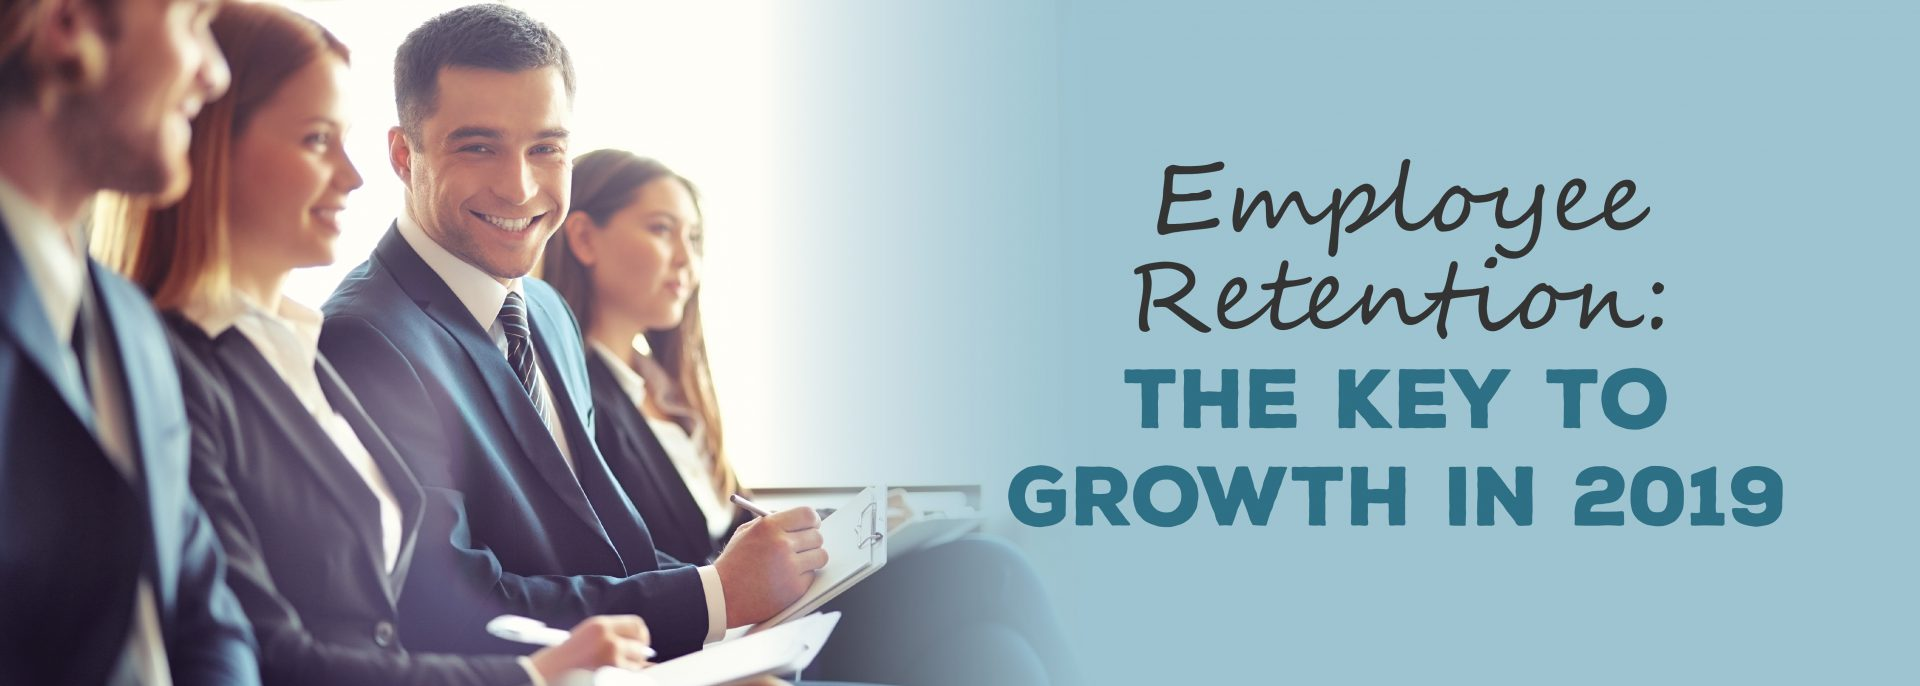 Employee Retention: The Key to Growth in 2019 ADI Agency